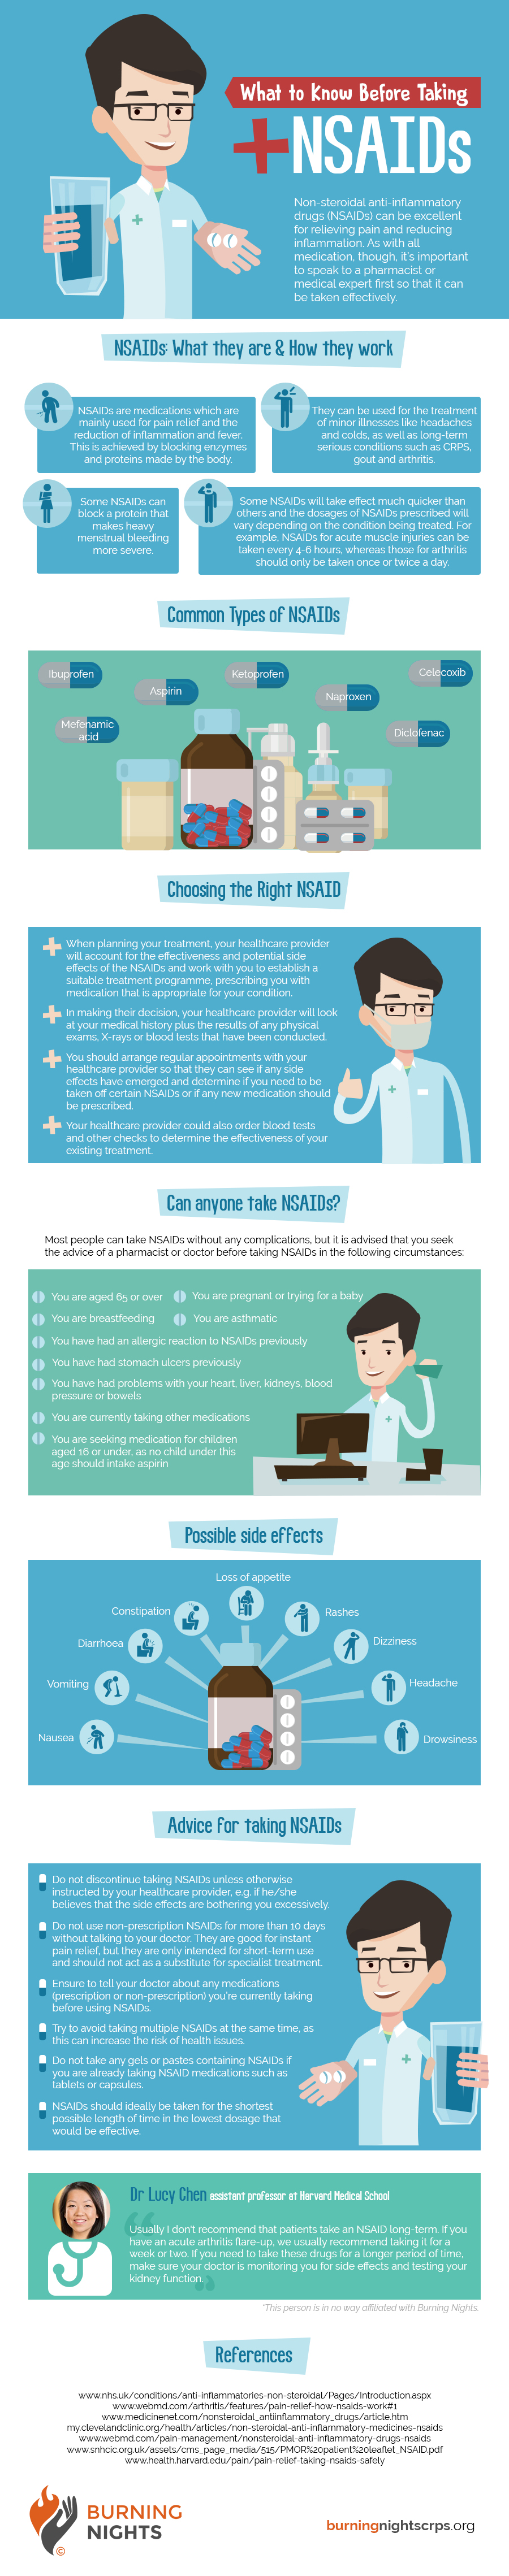 What to Know Before Taking NSAIDs Infographic